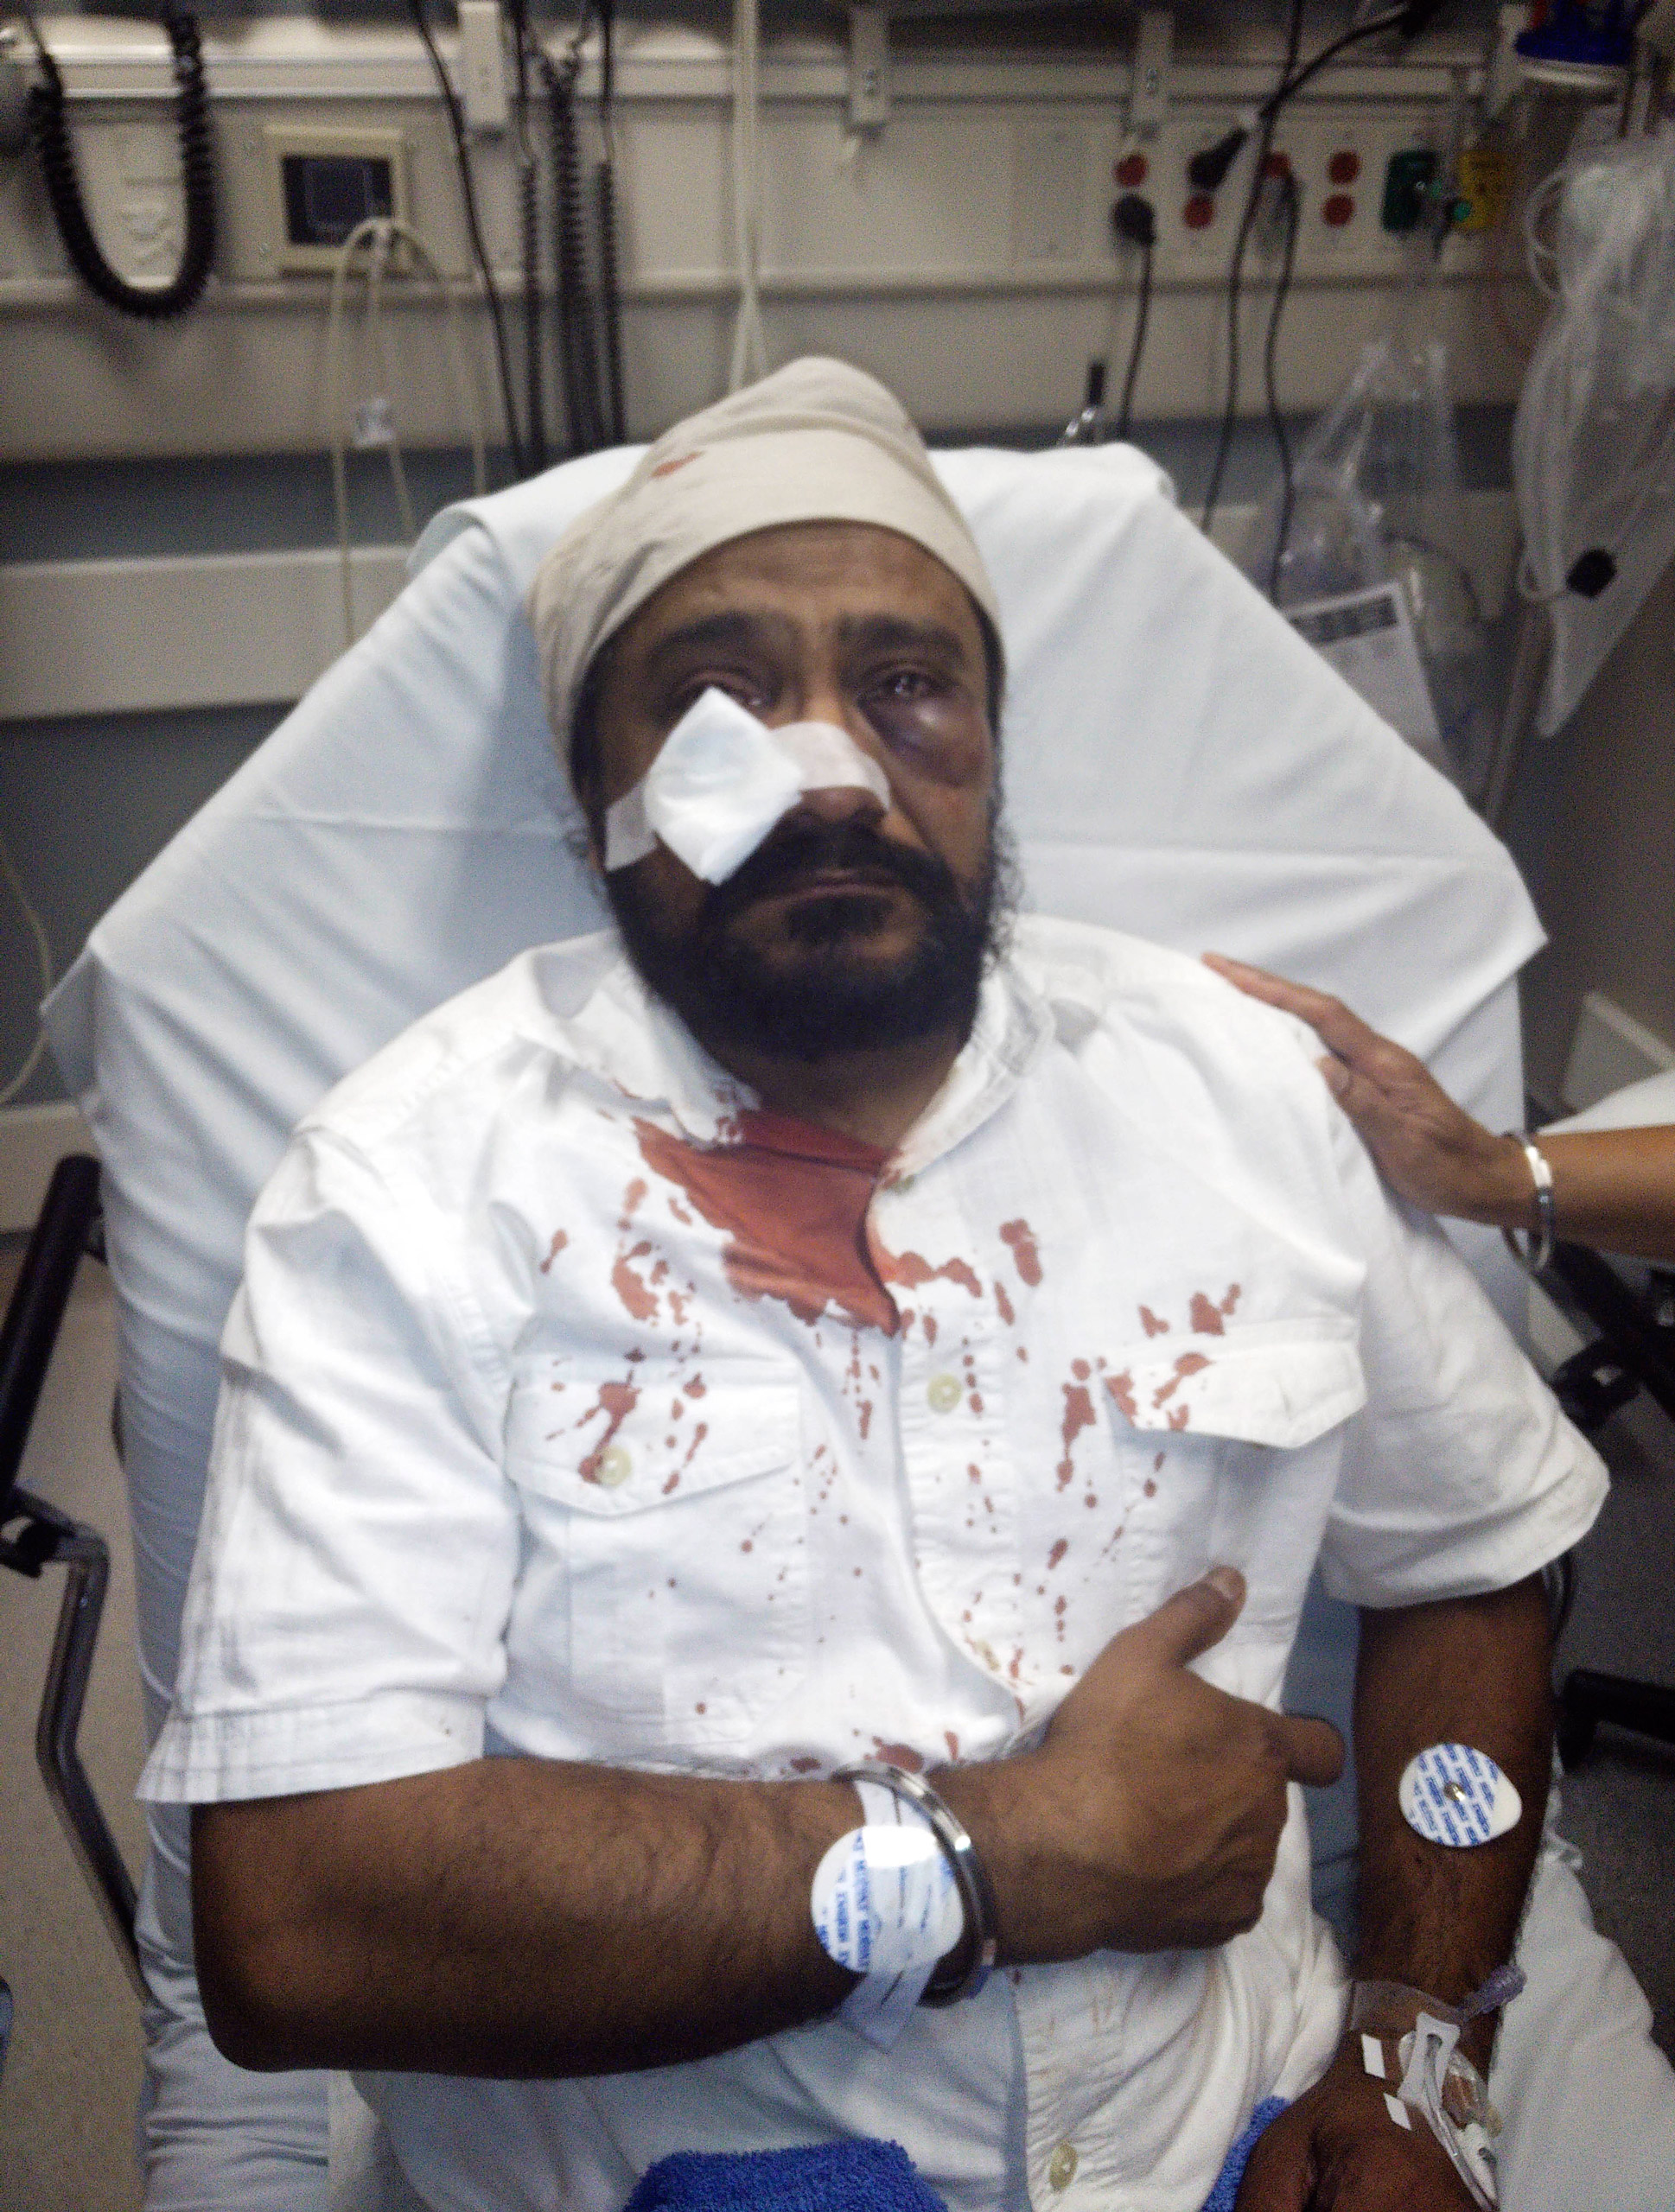 In this photo provided by The Sikh Coaliton, 53-year-old Inderjit Mukker is seen at a hospital in Hinsdale, Ill., on Sept. 8, 2015.